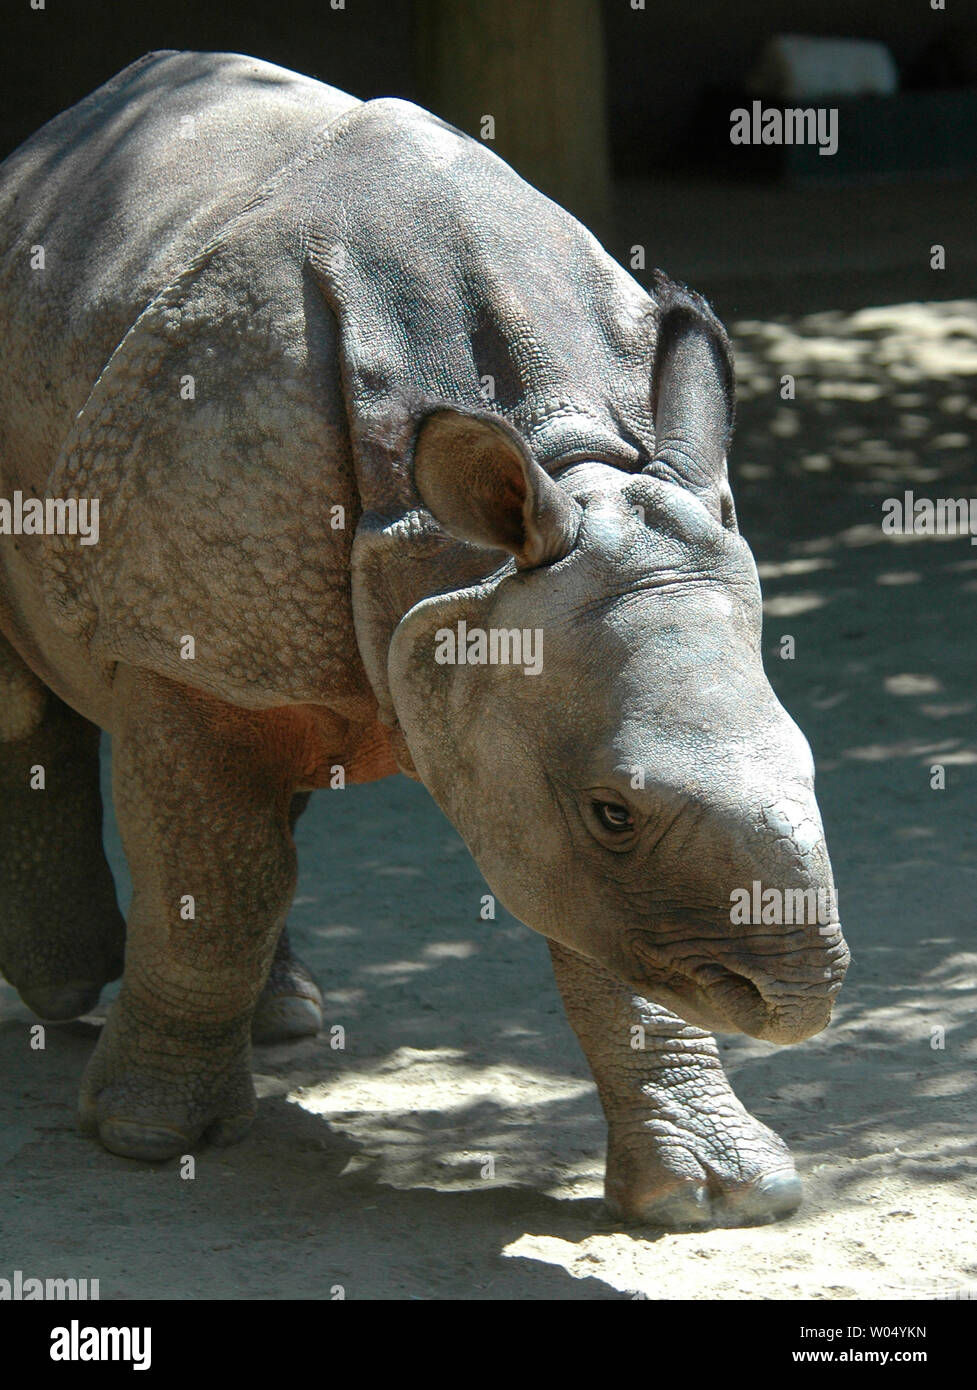 Old Rhino High Resolution Stock Photography And Images Alamy